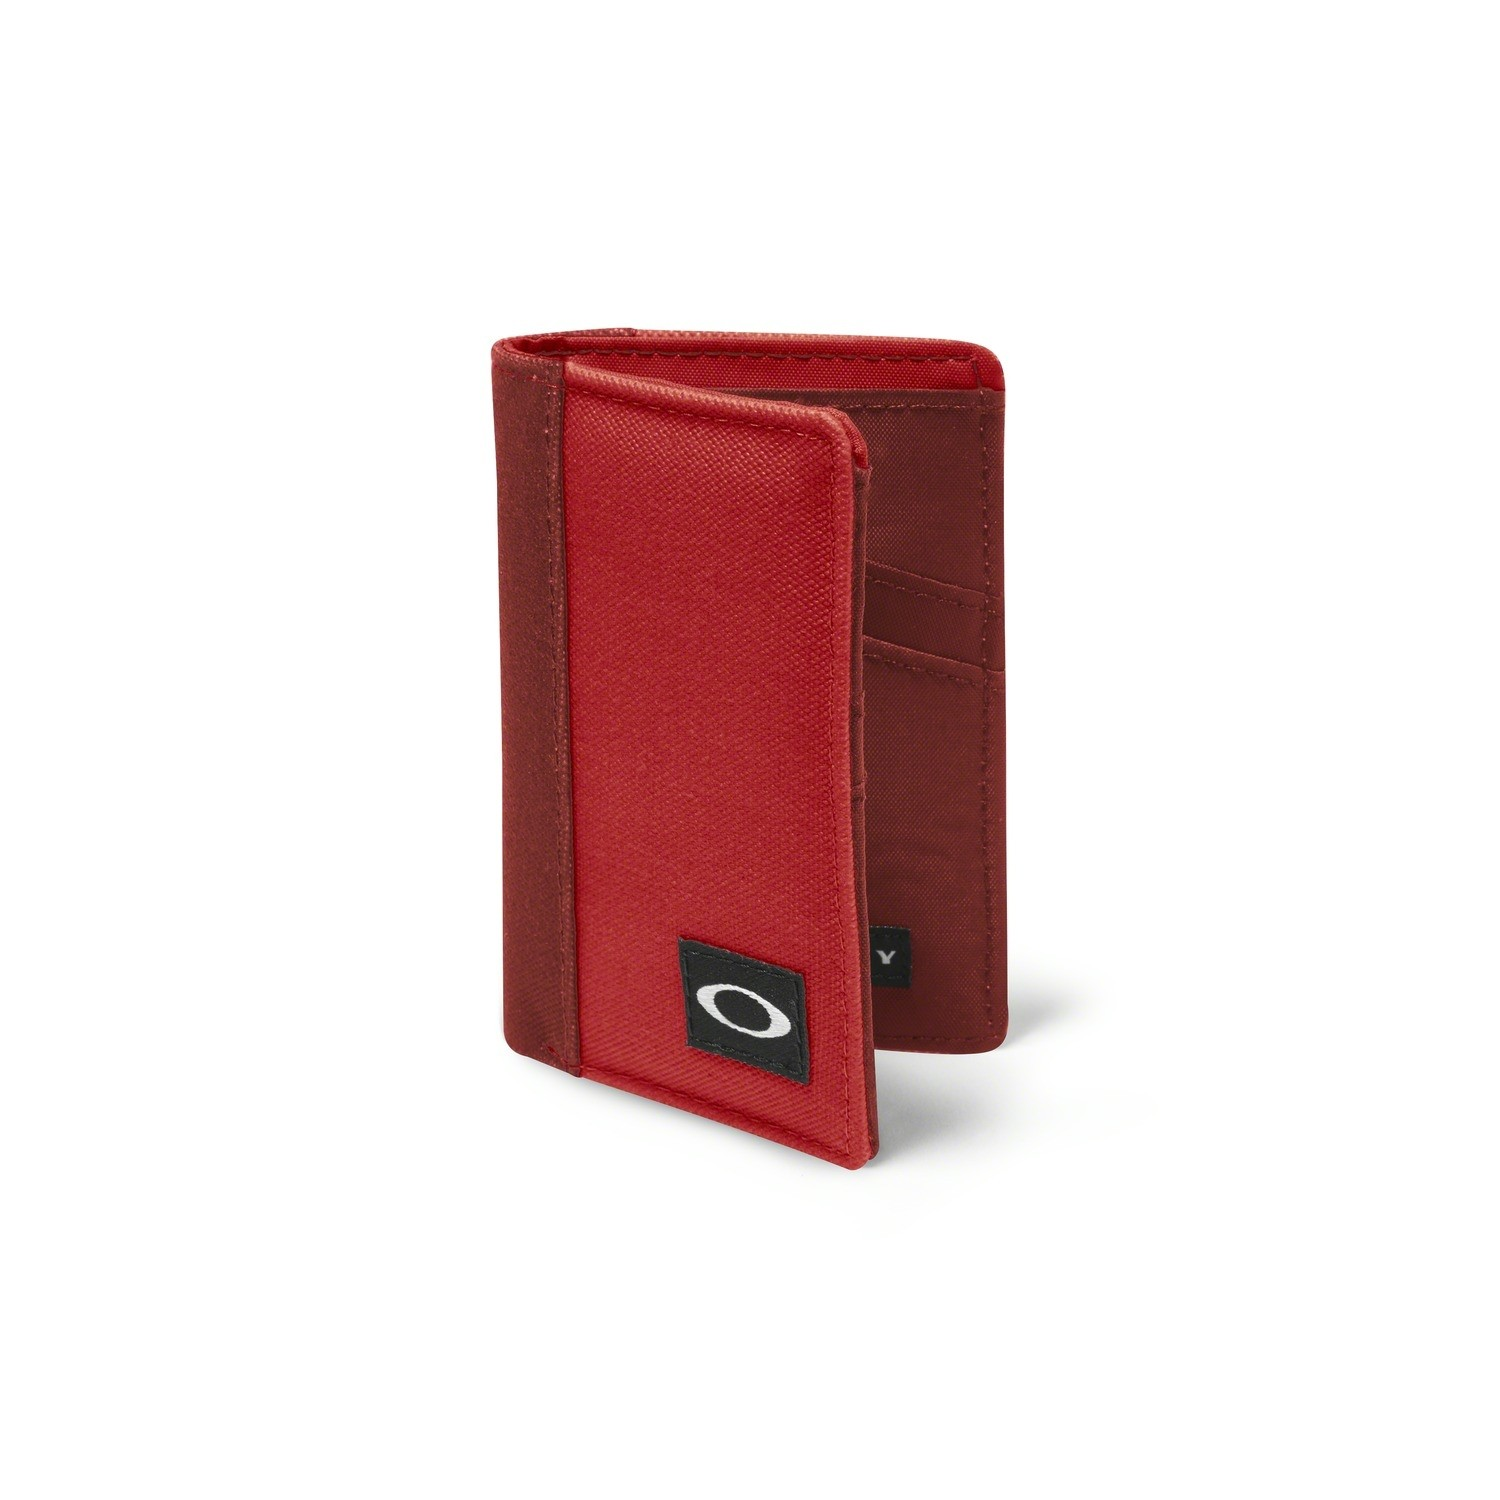 Portemonnee Webshop.Oakley Lock Box Wallet Fired Brick 95144 88b Portemonnee Shop